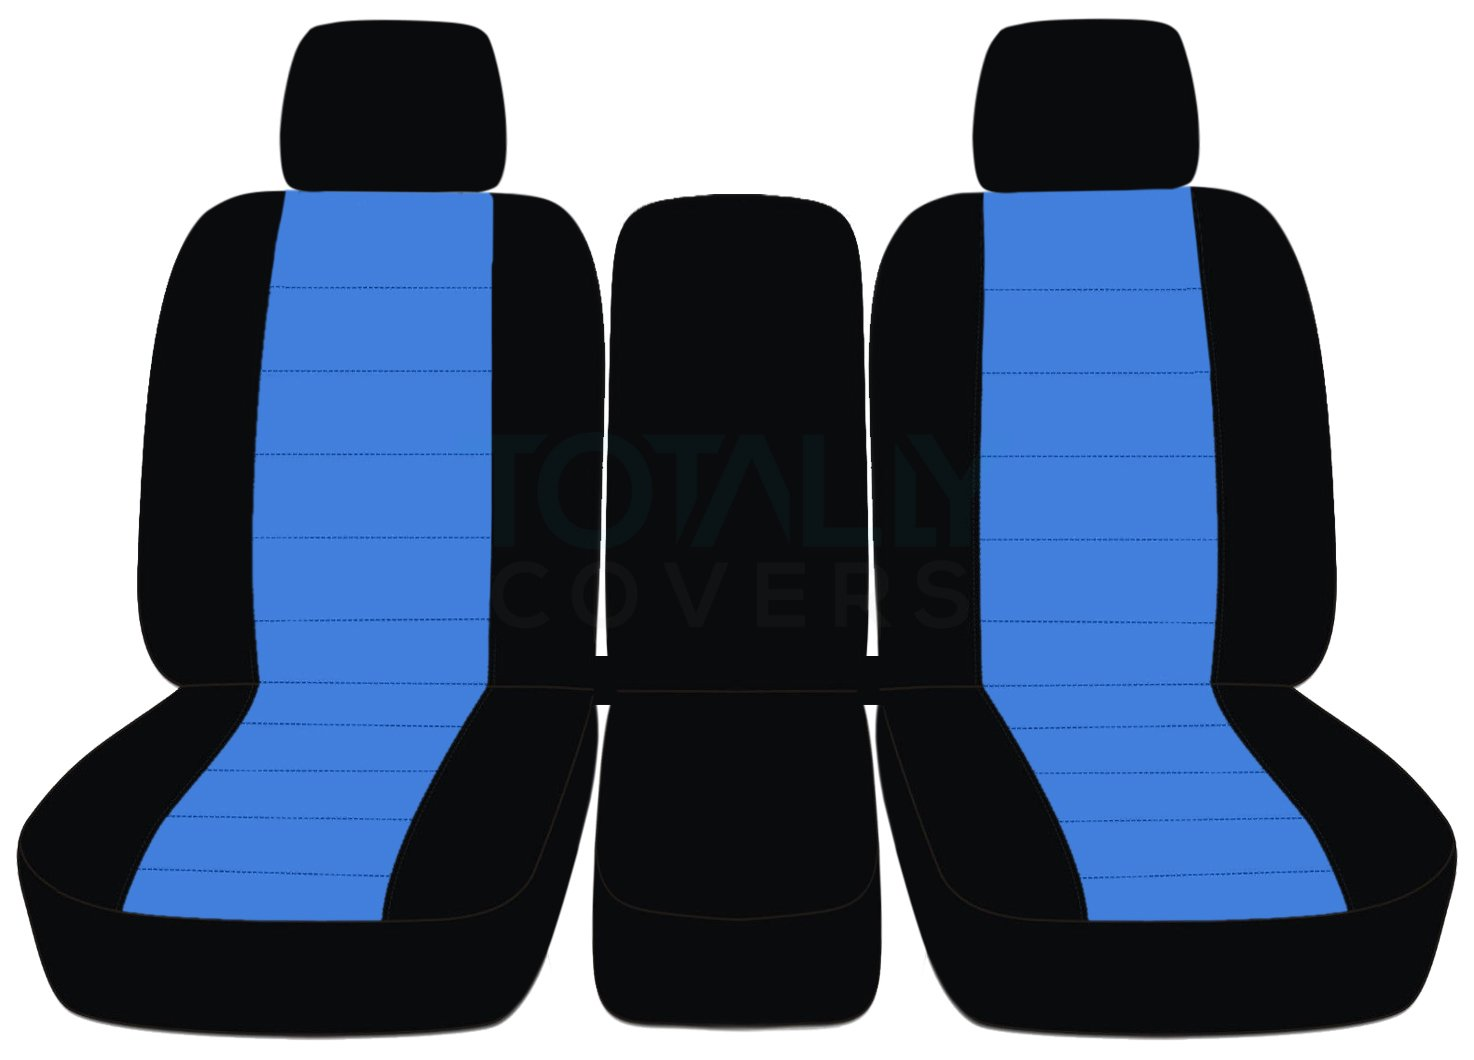 Designcovers 2009-2010 Ford F-150 Two-Tone Truck Seat Covers (Front 40/20/40 Split Bench) 2 Headrests & Opening Center Console/Solid Armrest: Black & Brown (21 Colors) F-Series F150